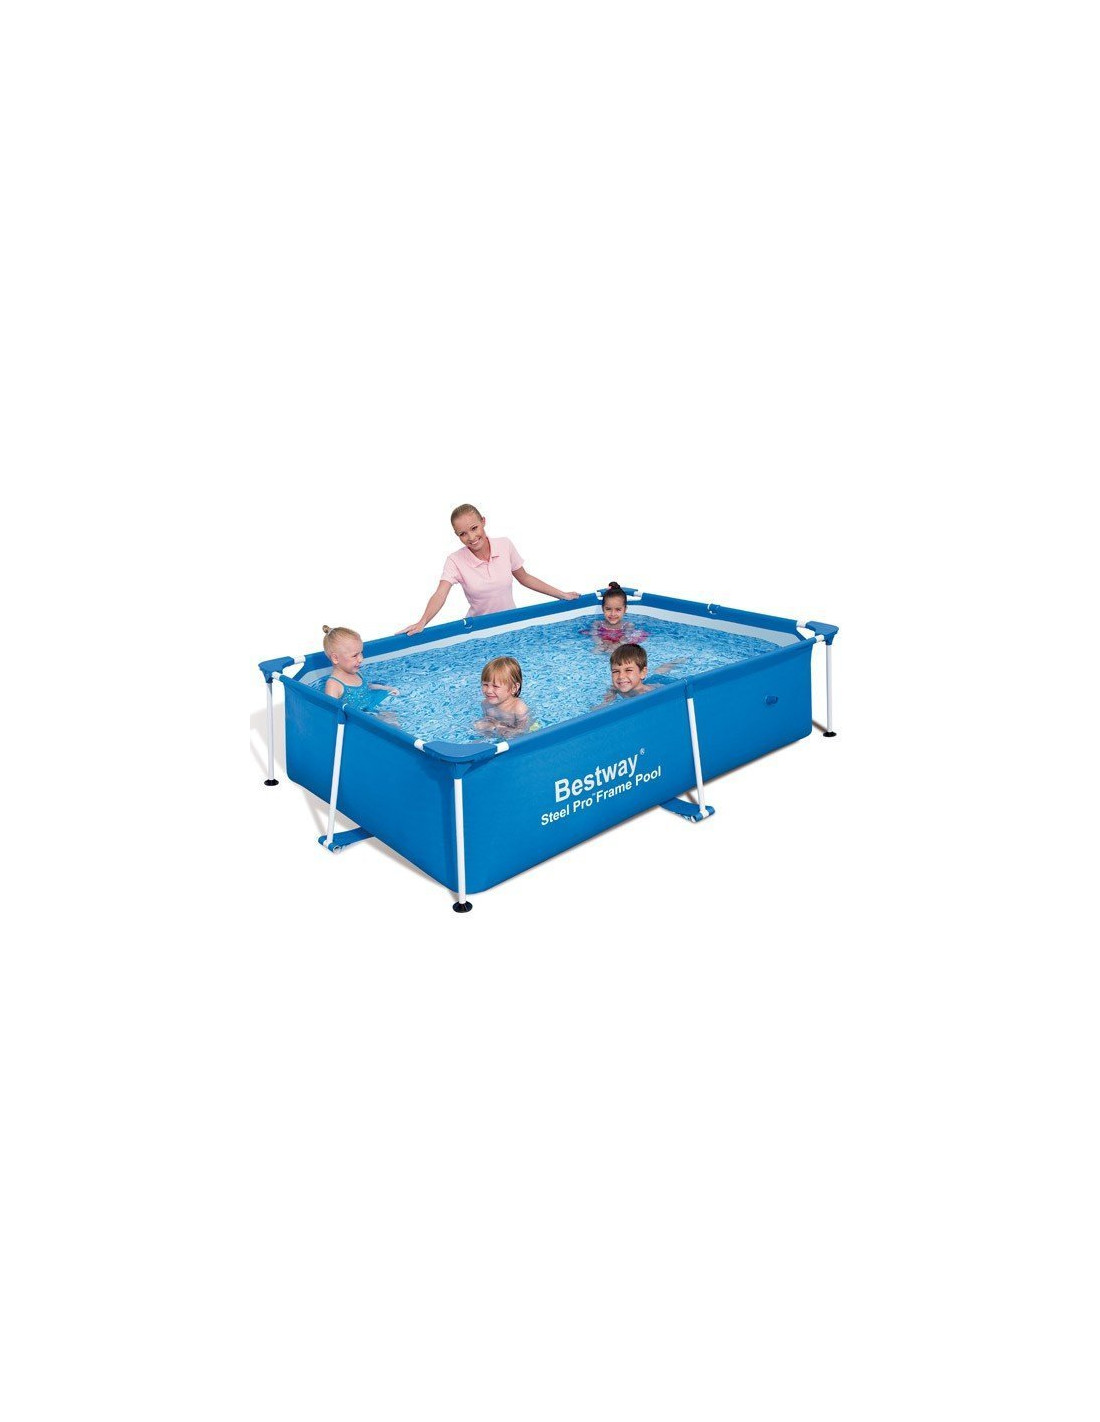 Piscine tubulaire bestway - Piscine gonflable rectangulaire ...